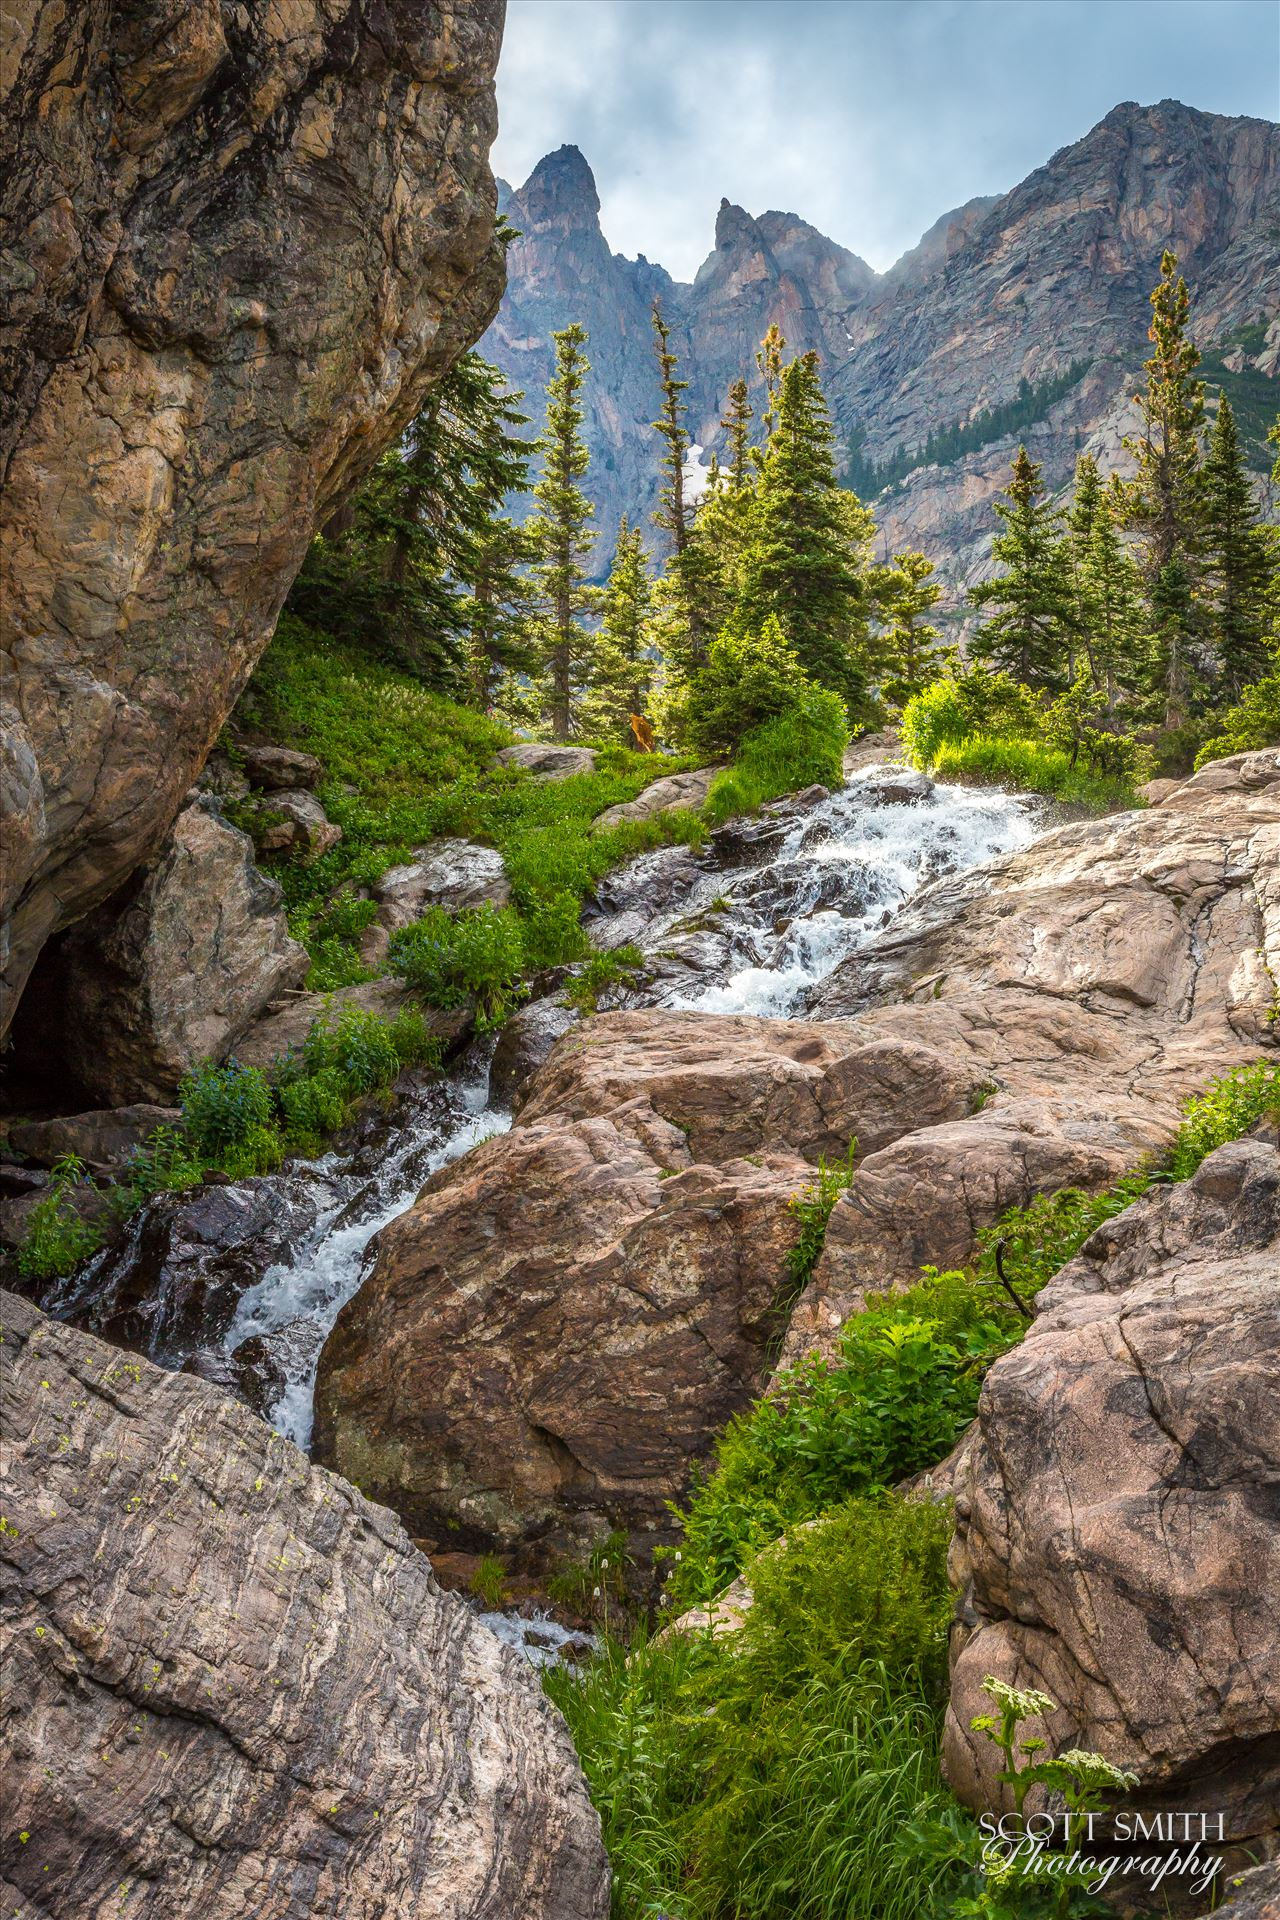 Bear Lake Trail Waterfall - A waterfall, part way up to Lake Emerald, on Bear Lake Trail, Rocky Mountain National Park by D Scott Smith